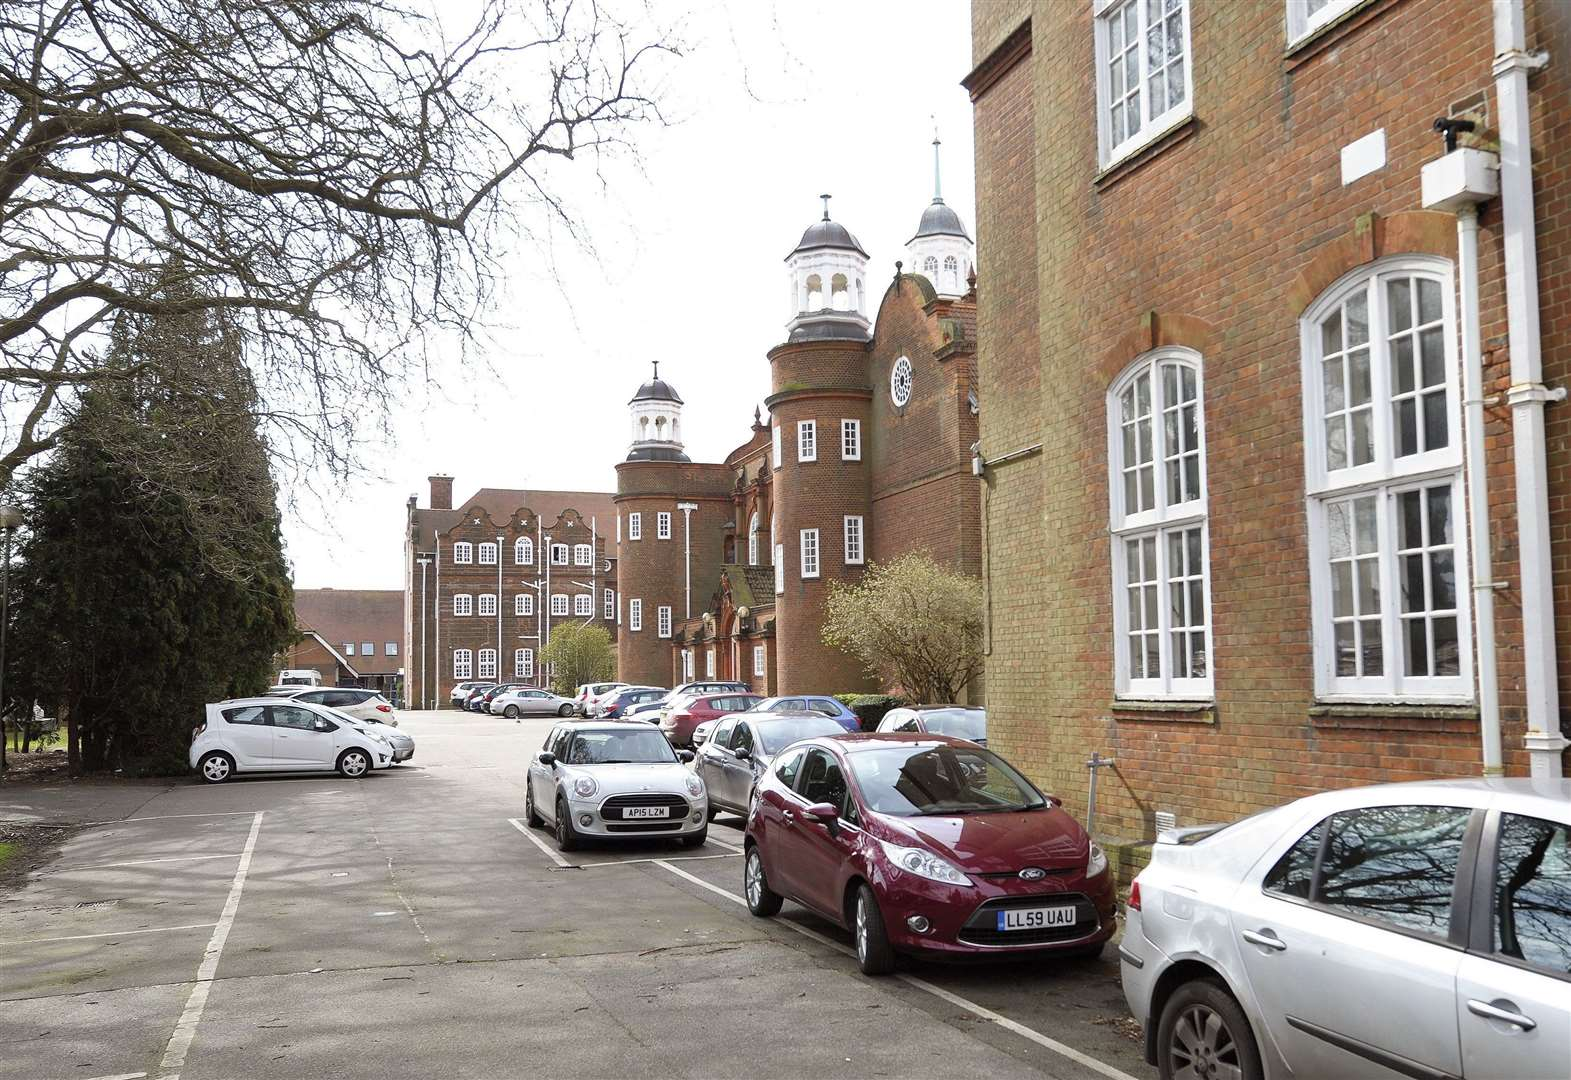 King's Lynn school rated 'Inadequate' by inspectors as homophobia and 'poor teaching' claims made